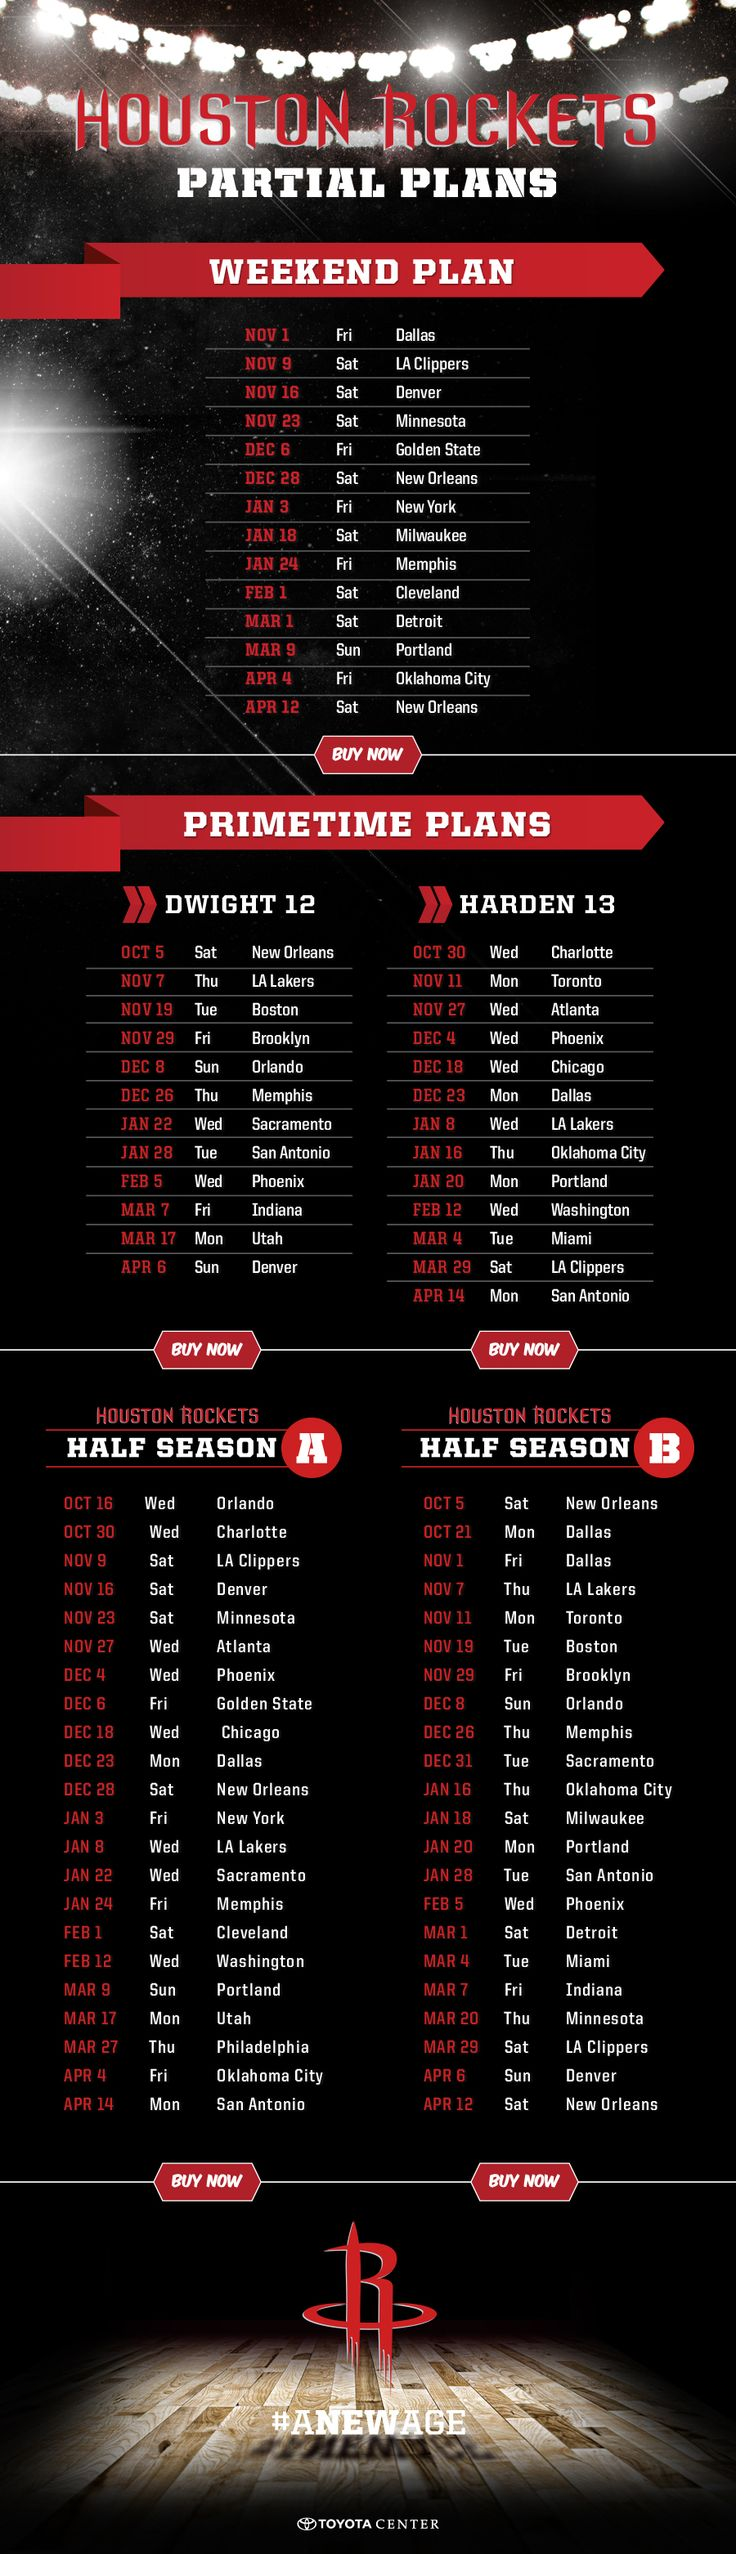 2013 14 partial season ticket plans available now get yours now